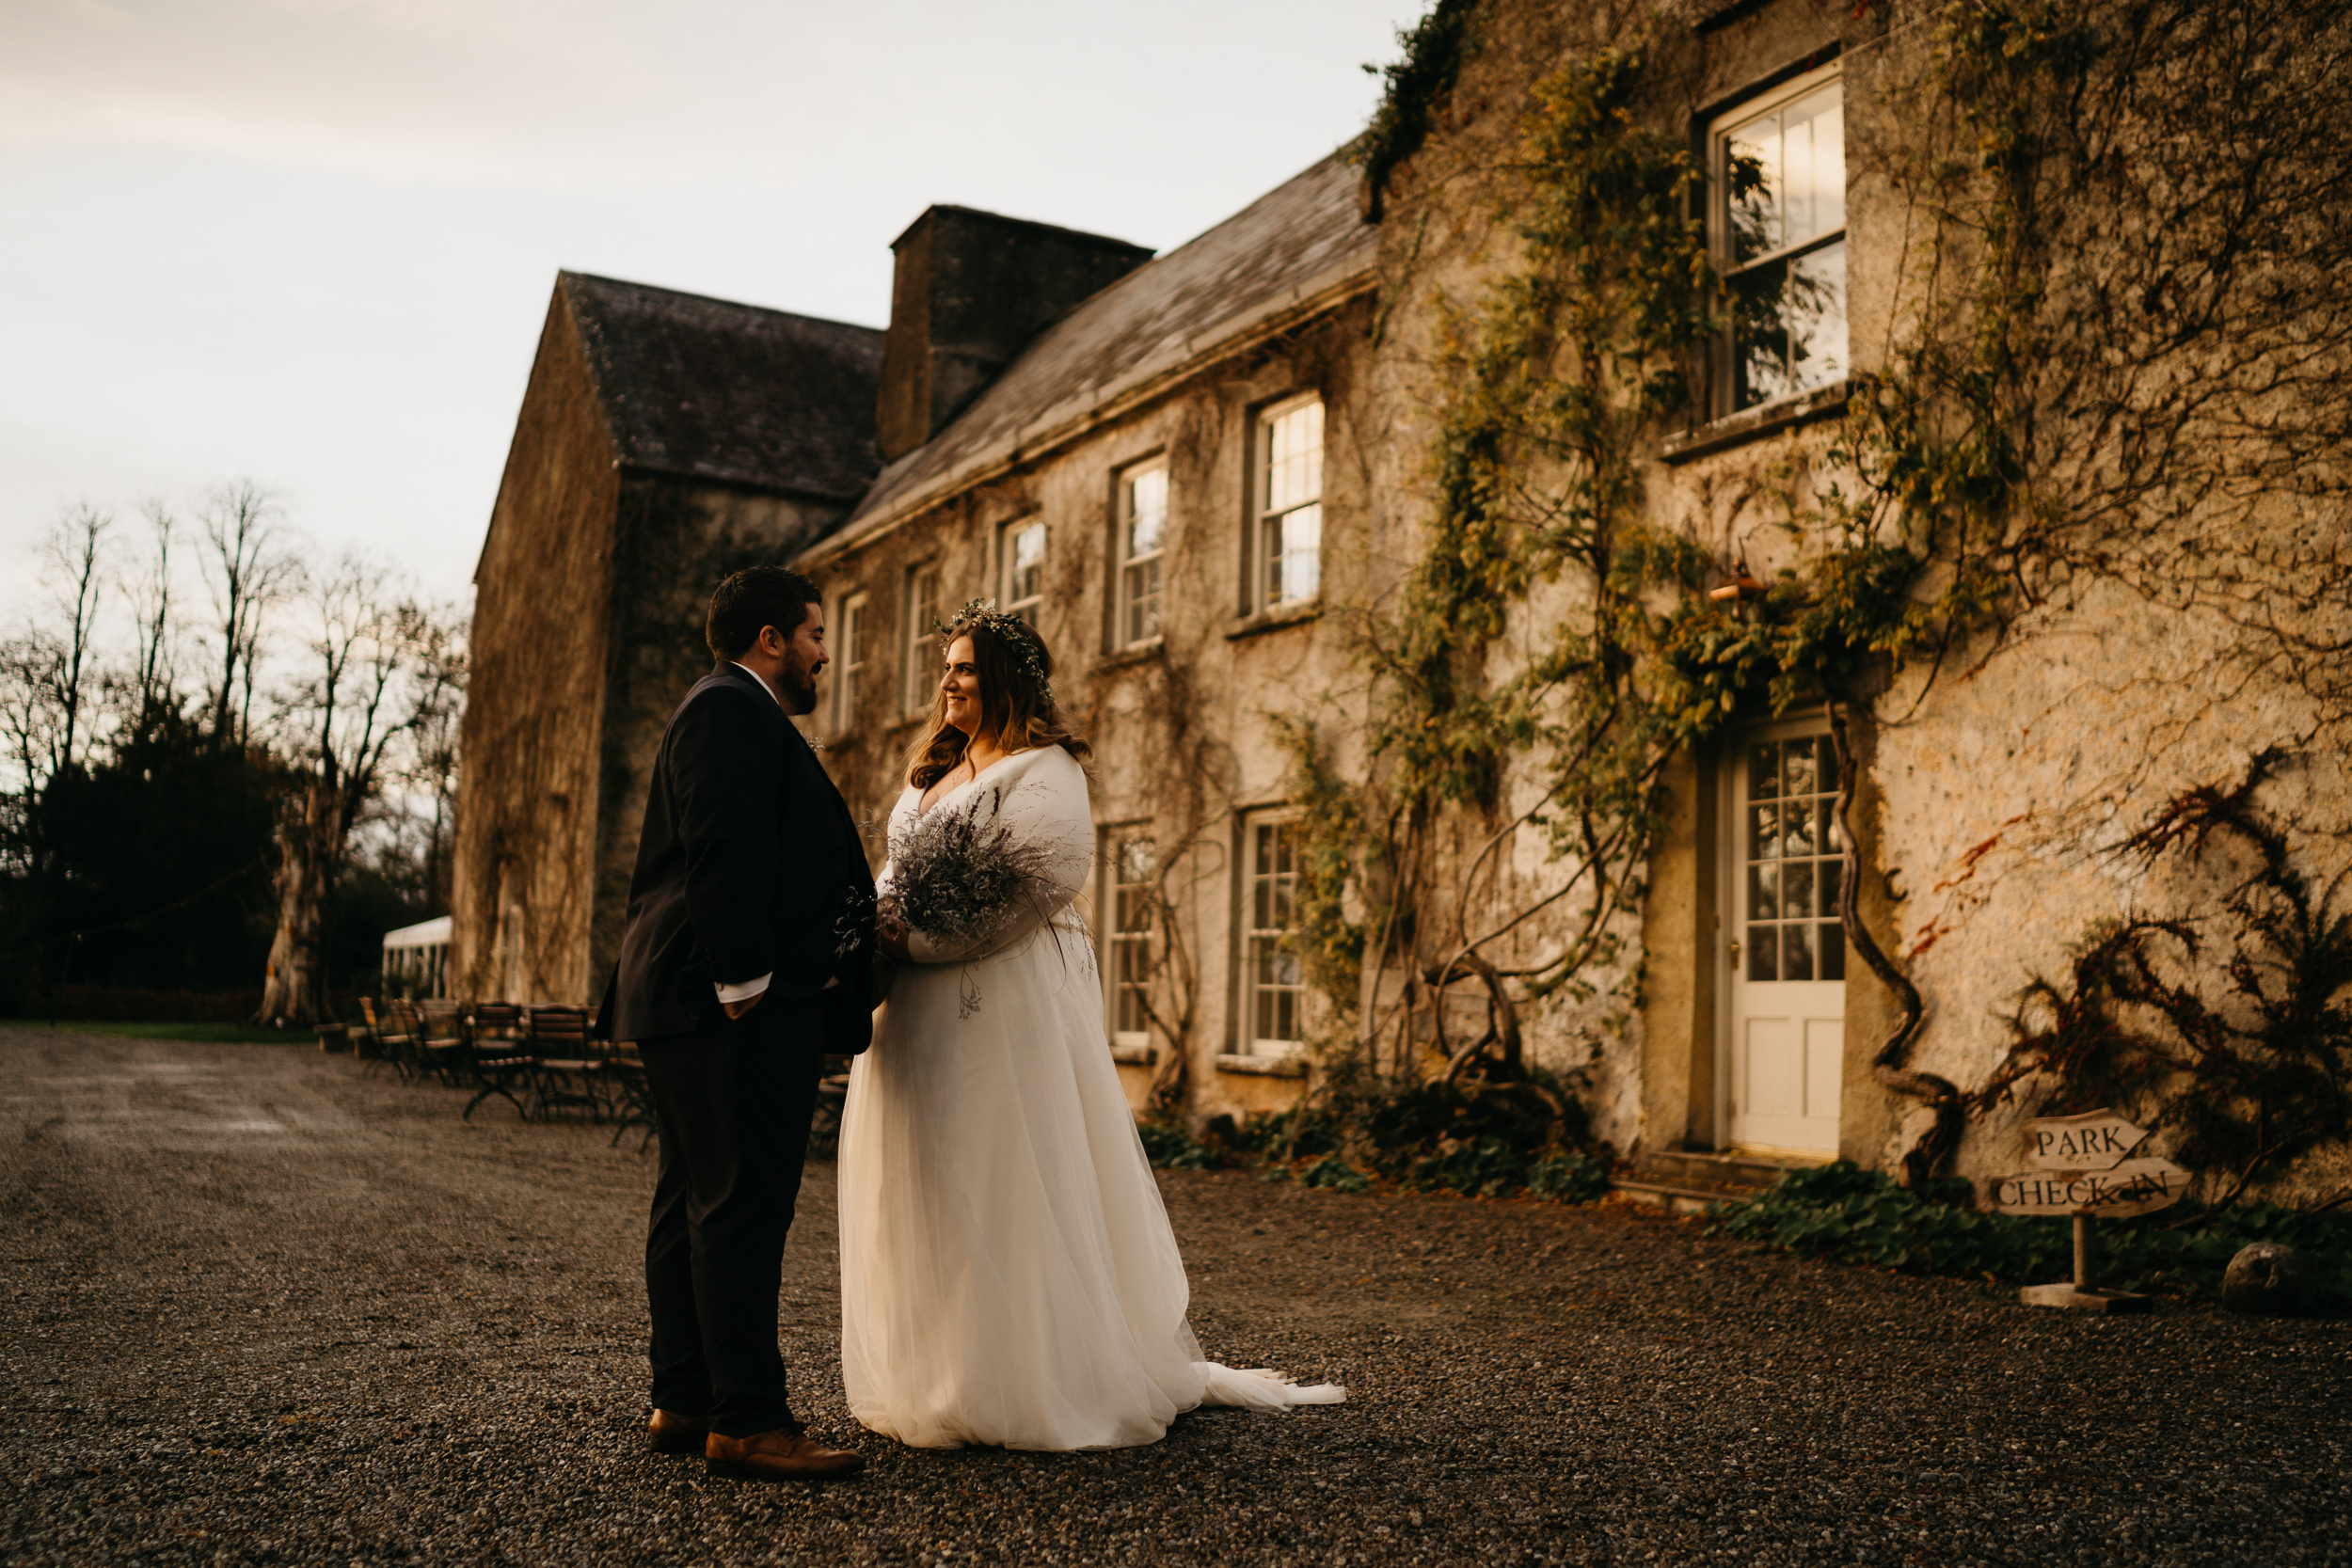 wedding-venue-tipperary-ireland-cloughjordan-house-igstudio